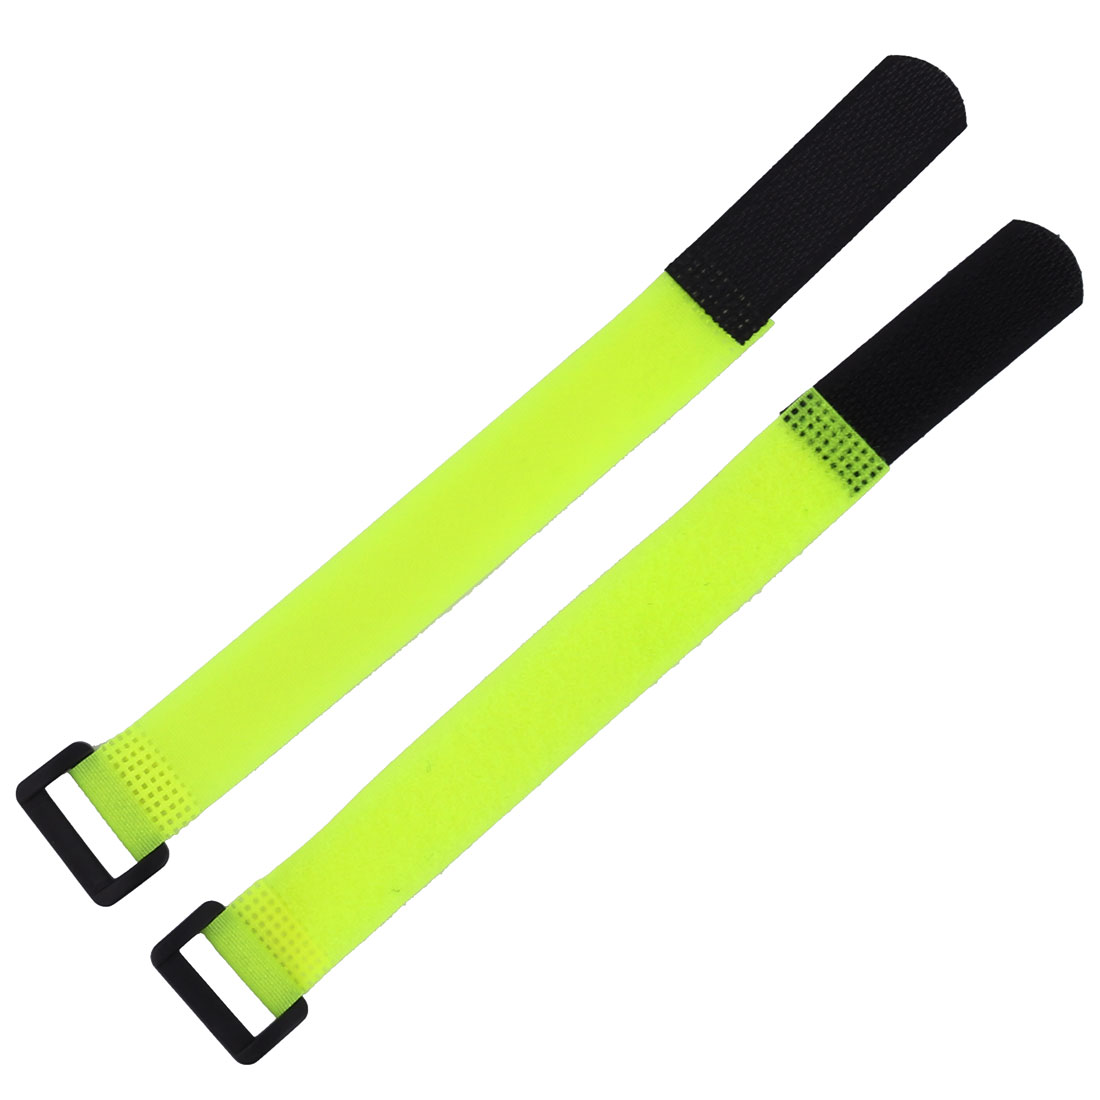 Nylon Adjustable Hook Loop Cable Ties Self Adhesive Fastener Light Green 2pcs